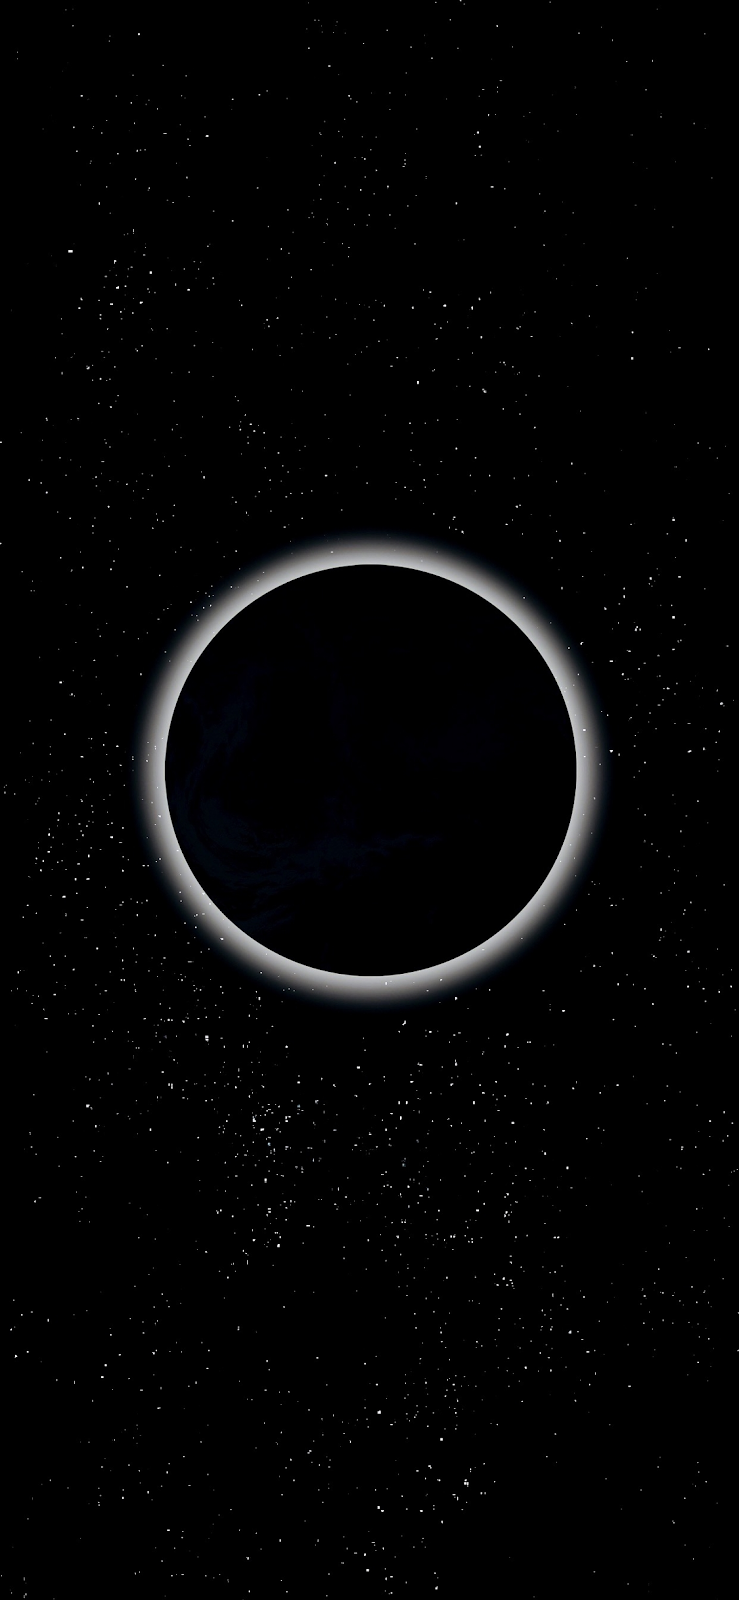 Eclipse Scenery By Ar72014 Wallpaper Iphone Android Background Followme Hypebeast Wallpaper Starry Night Wallpaper Cellphone Wallpaper